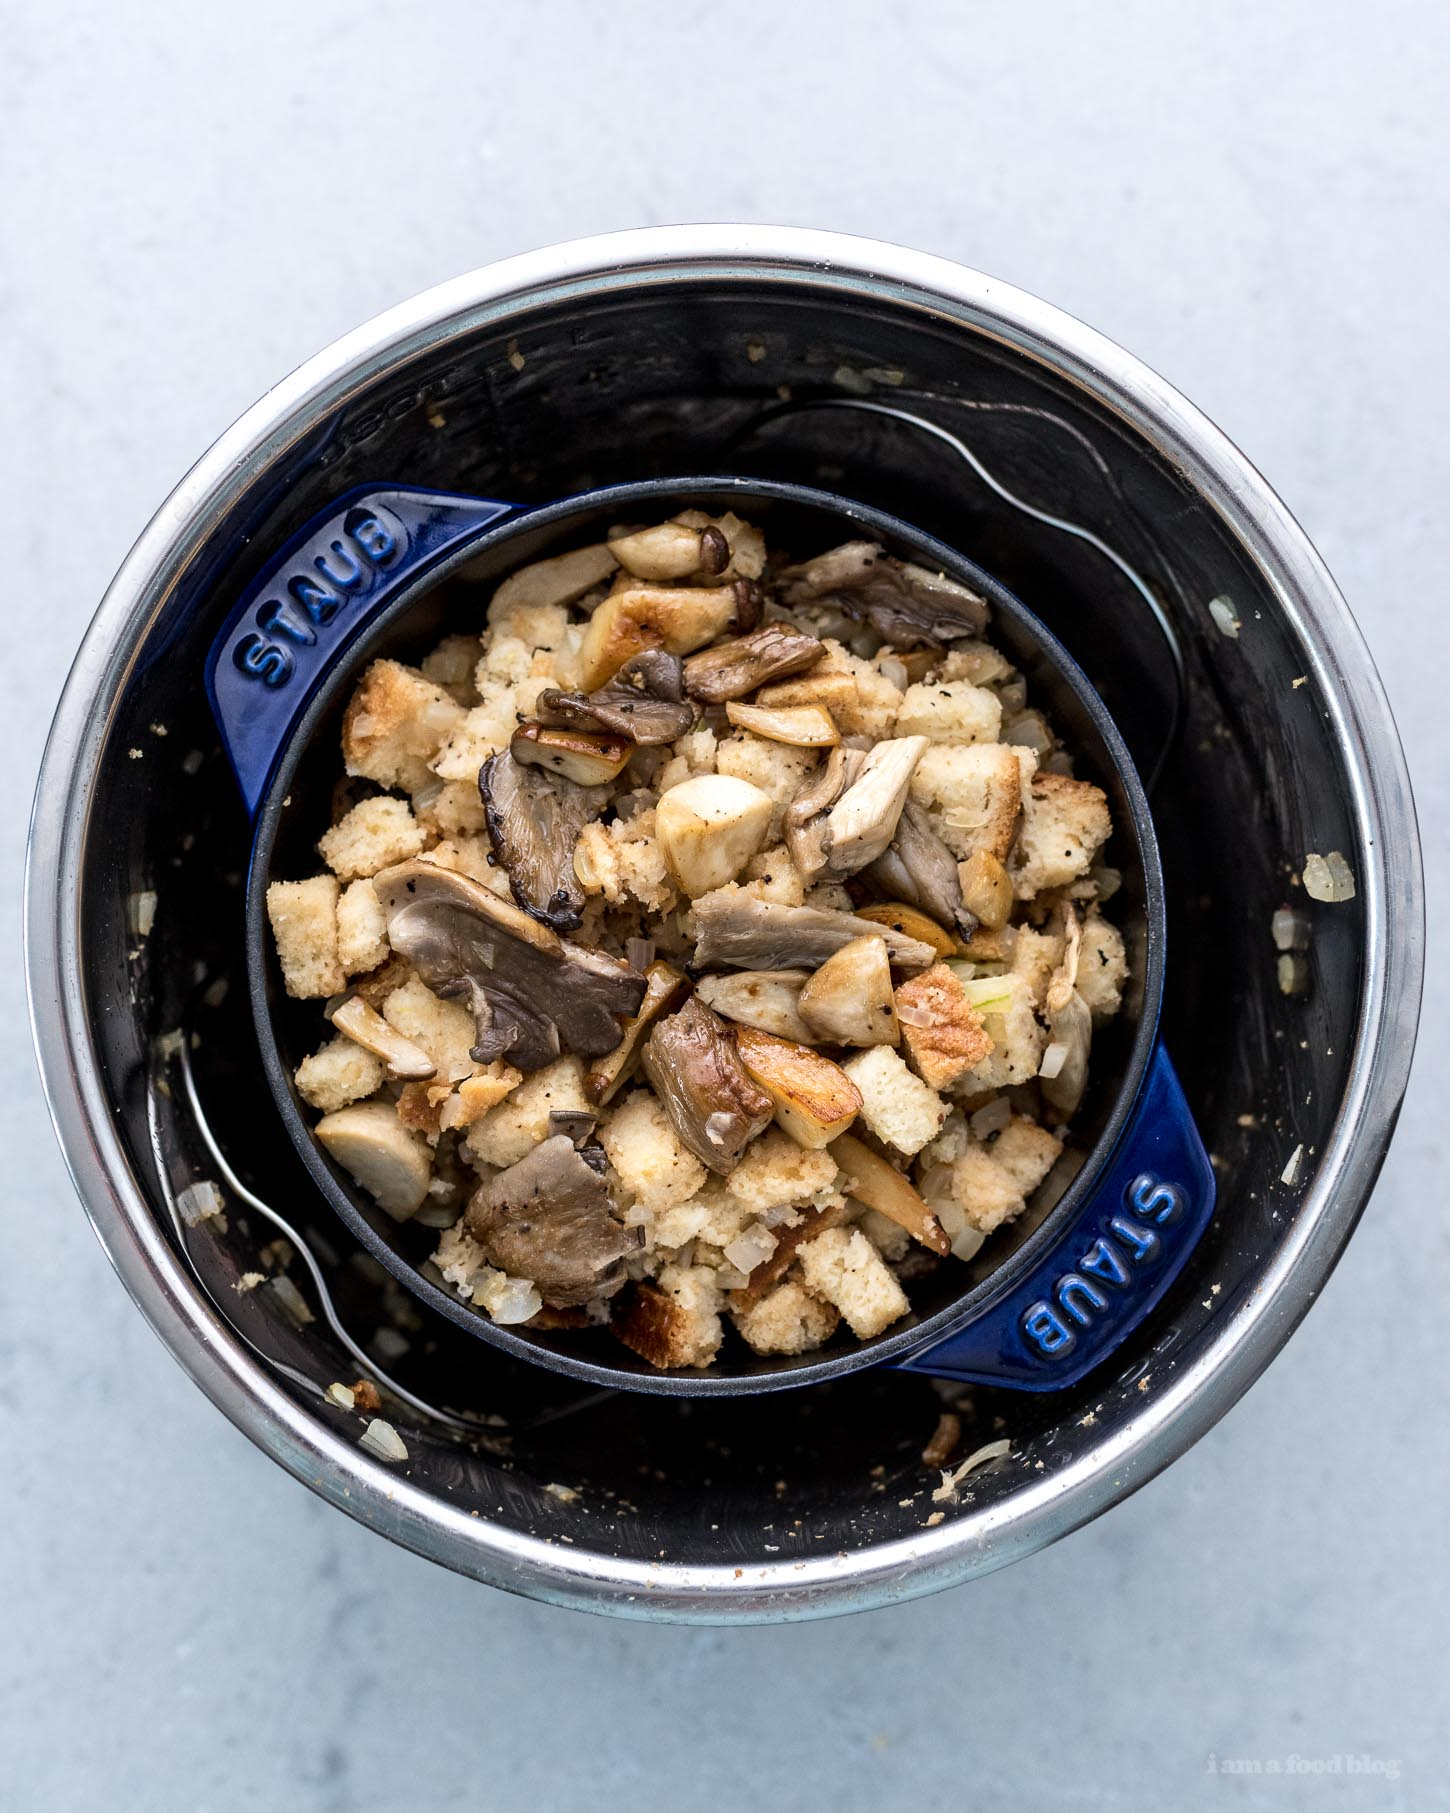 5 Ingredient 15 Minute Instant Pot Mushroom and Onion Stuffing | www.iamafoodblog.com